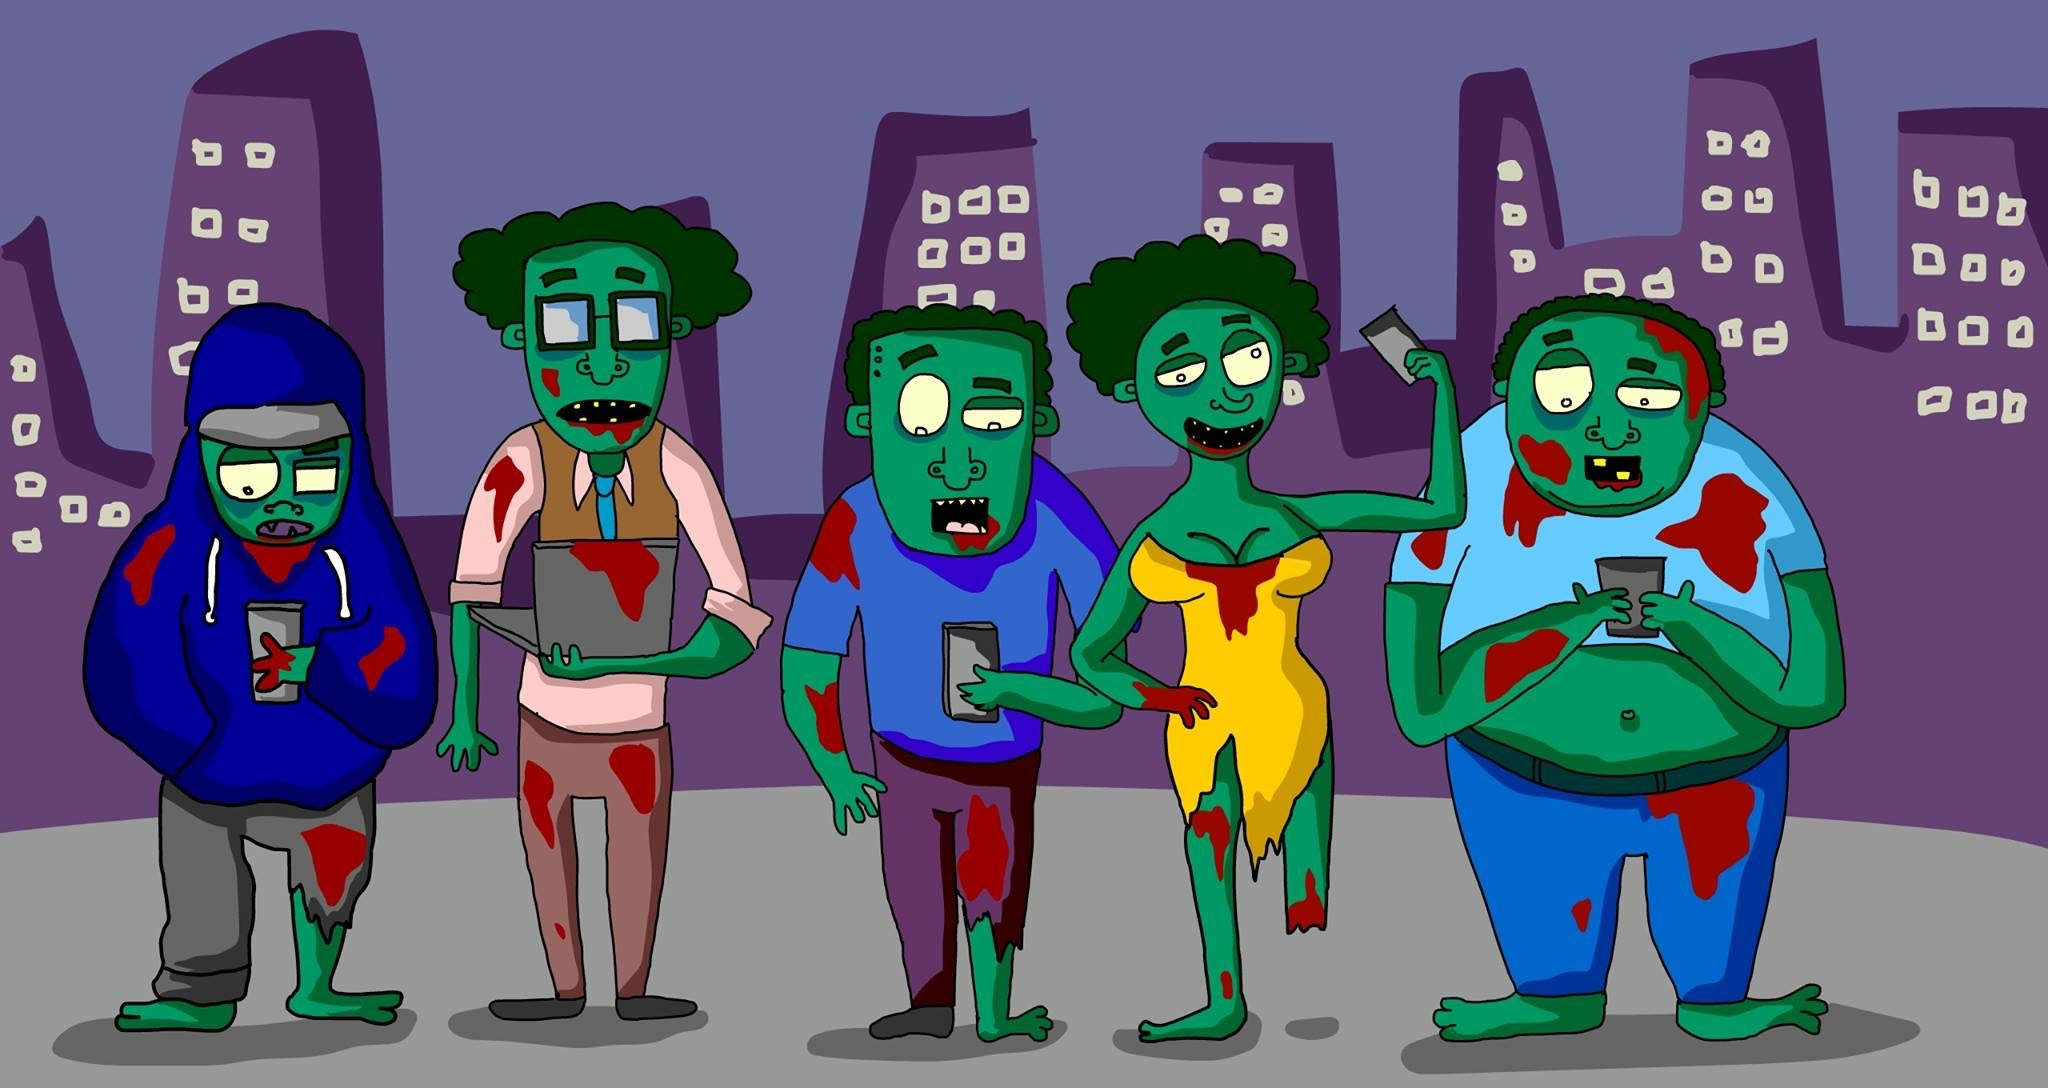 Are You Prepared For The Social Media Zombie Apocalypse?